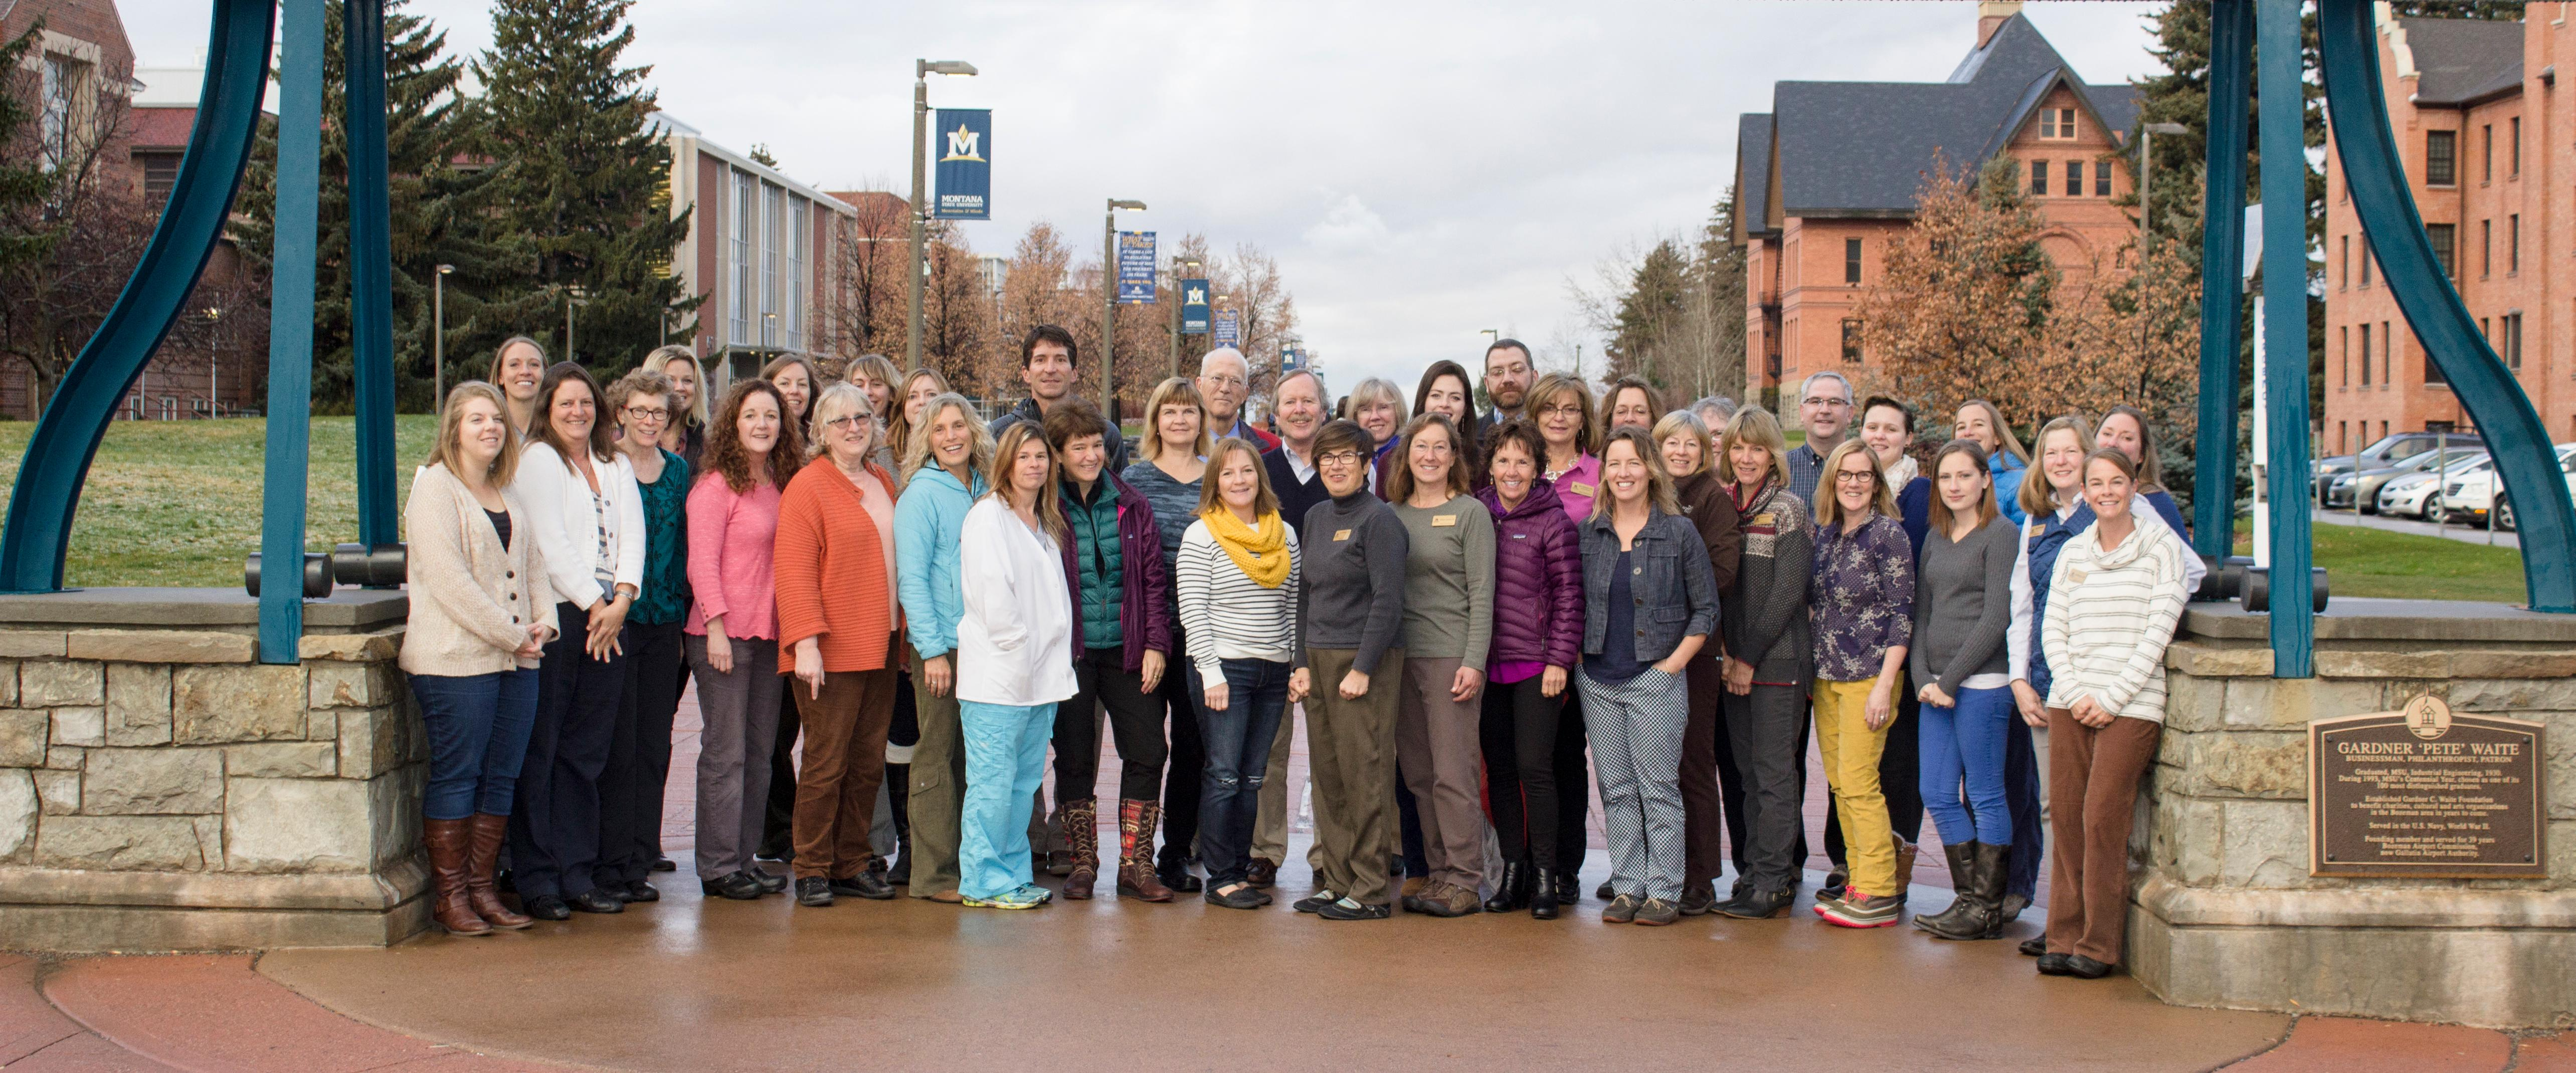 UHP Medical Services Staff